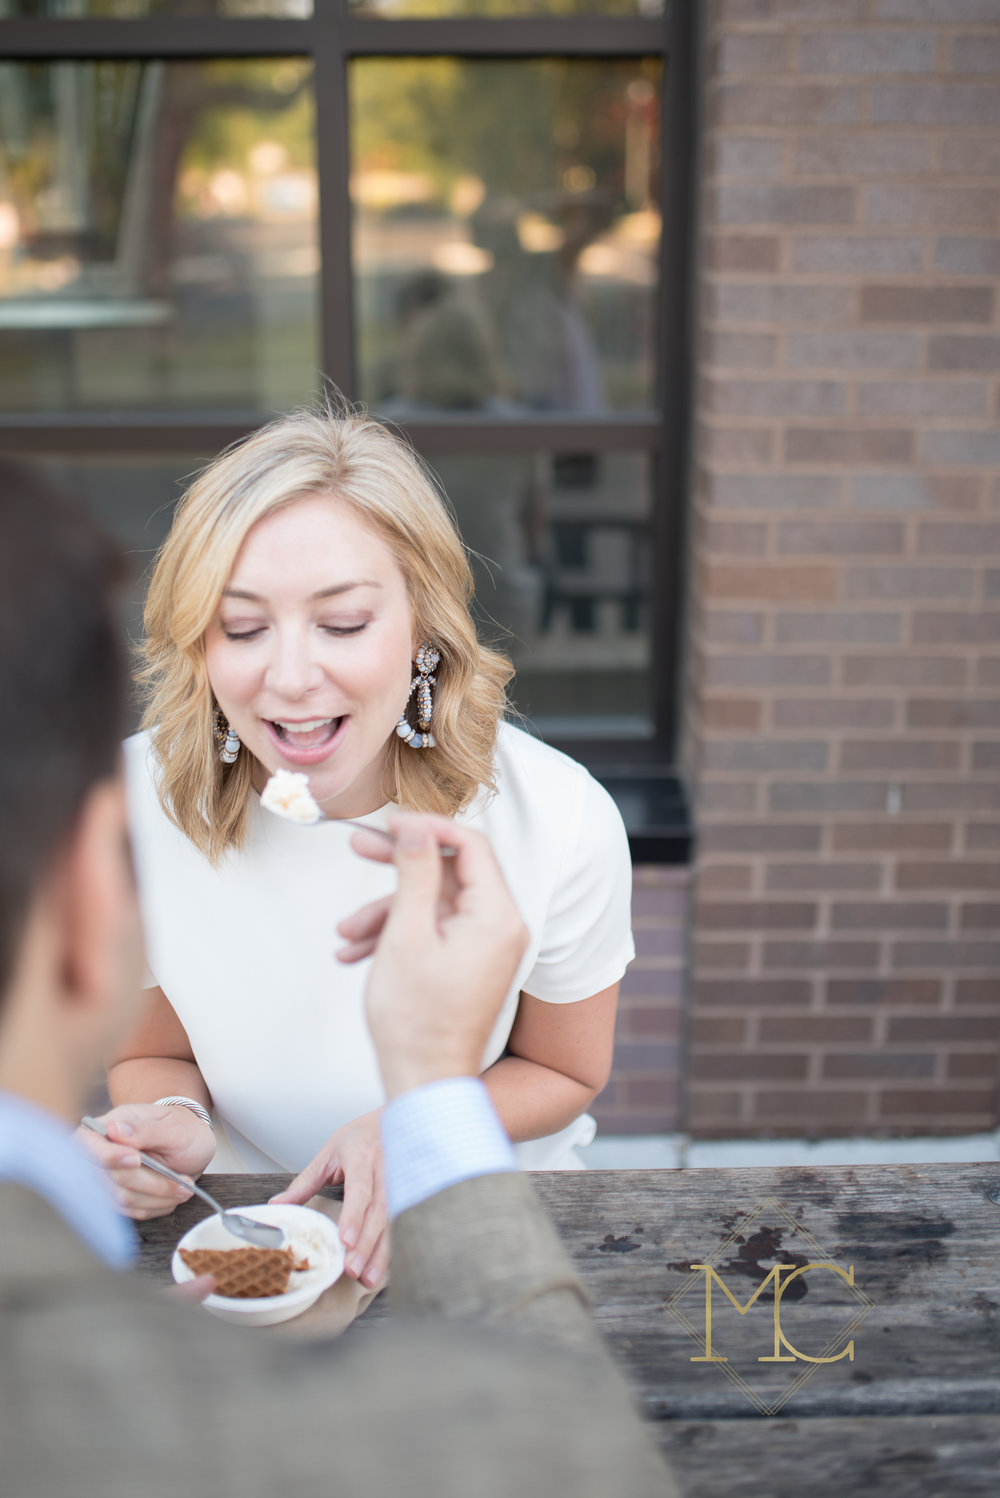 image from nashville engagement photo session of couple eating ice cream at jeni's ice cream in 12 south